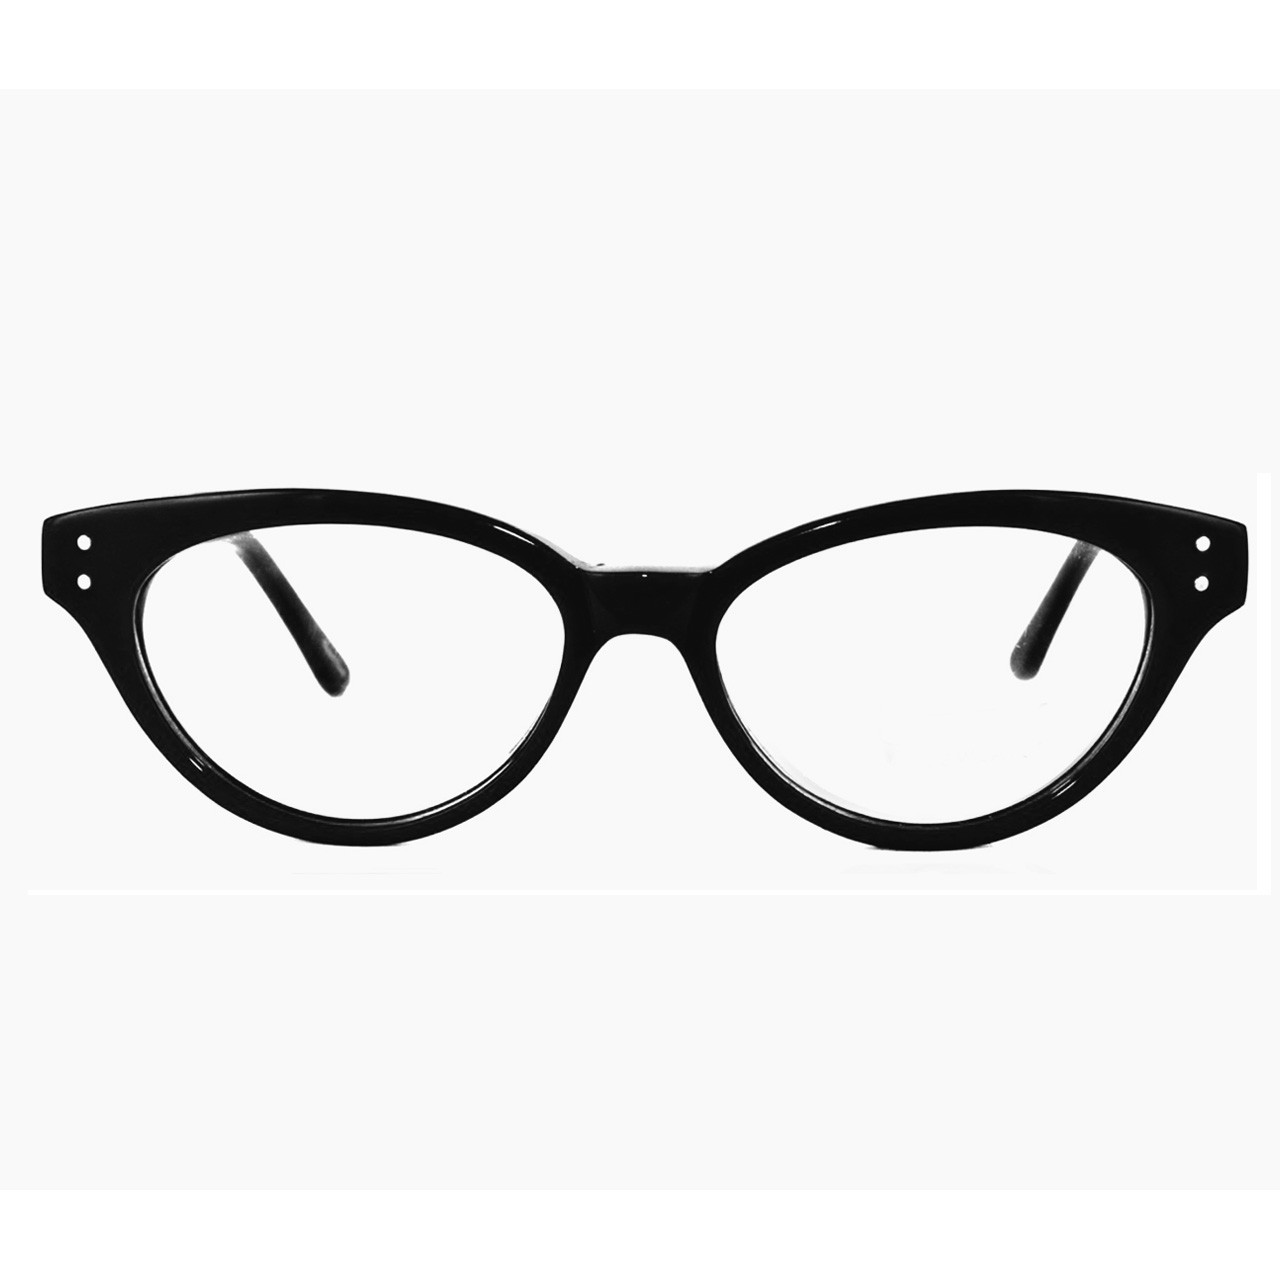 GEEK Eyewear GEEK CAT 03 Black Sunglasses